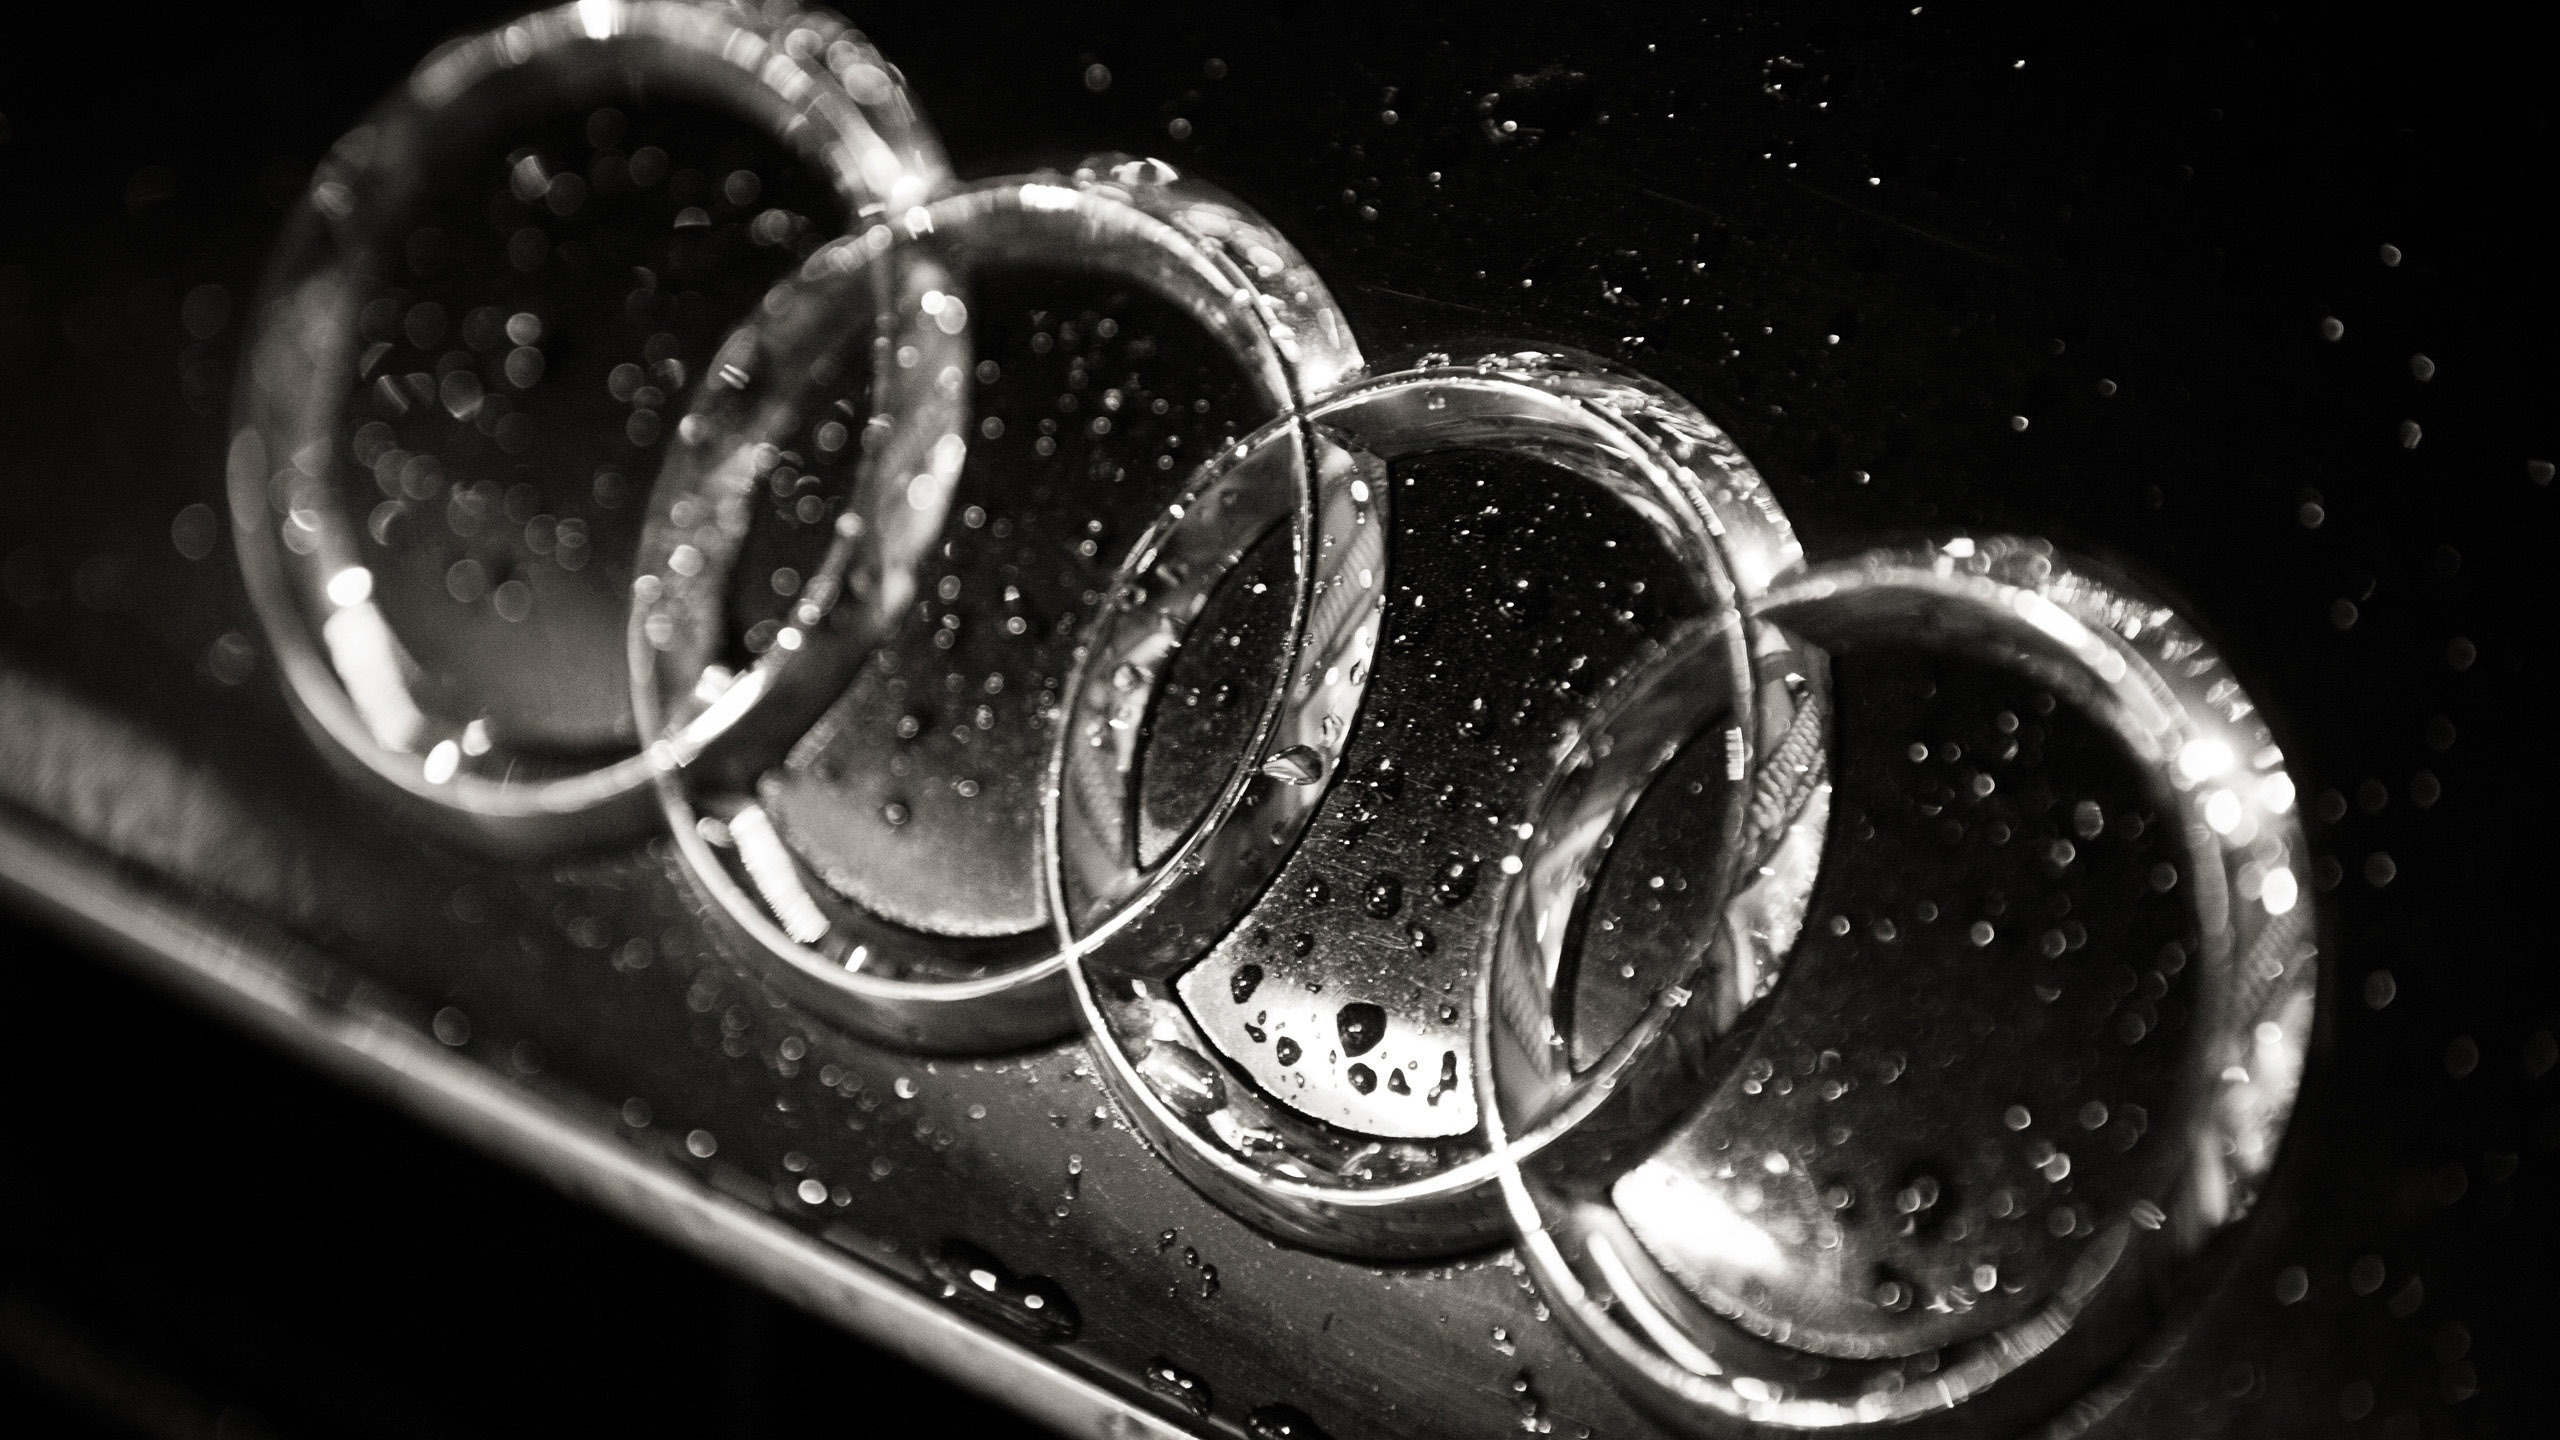 2560x1440 Wet Audi logo, cars